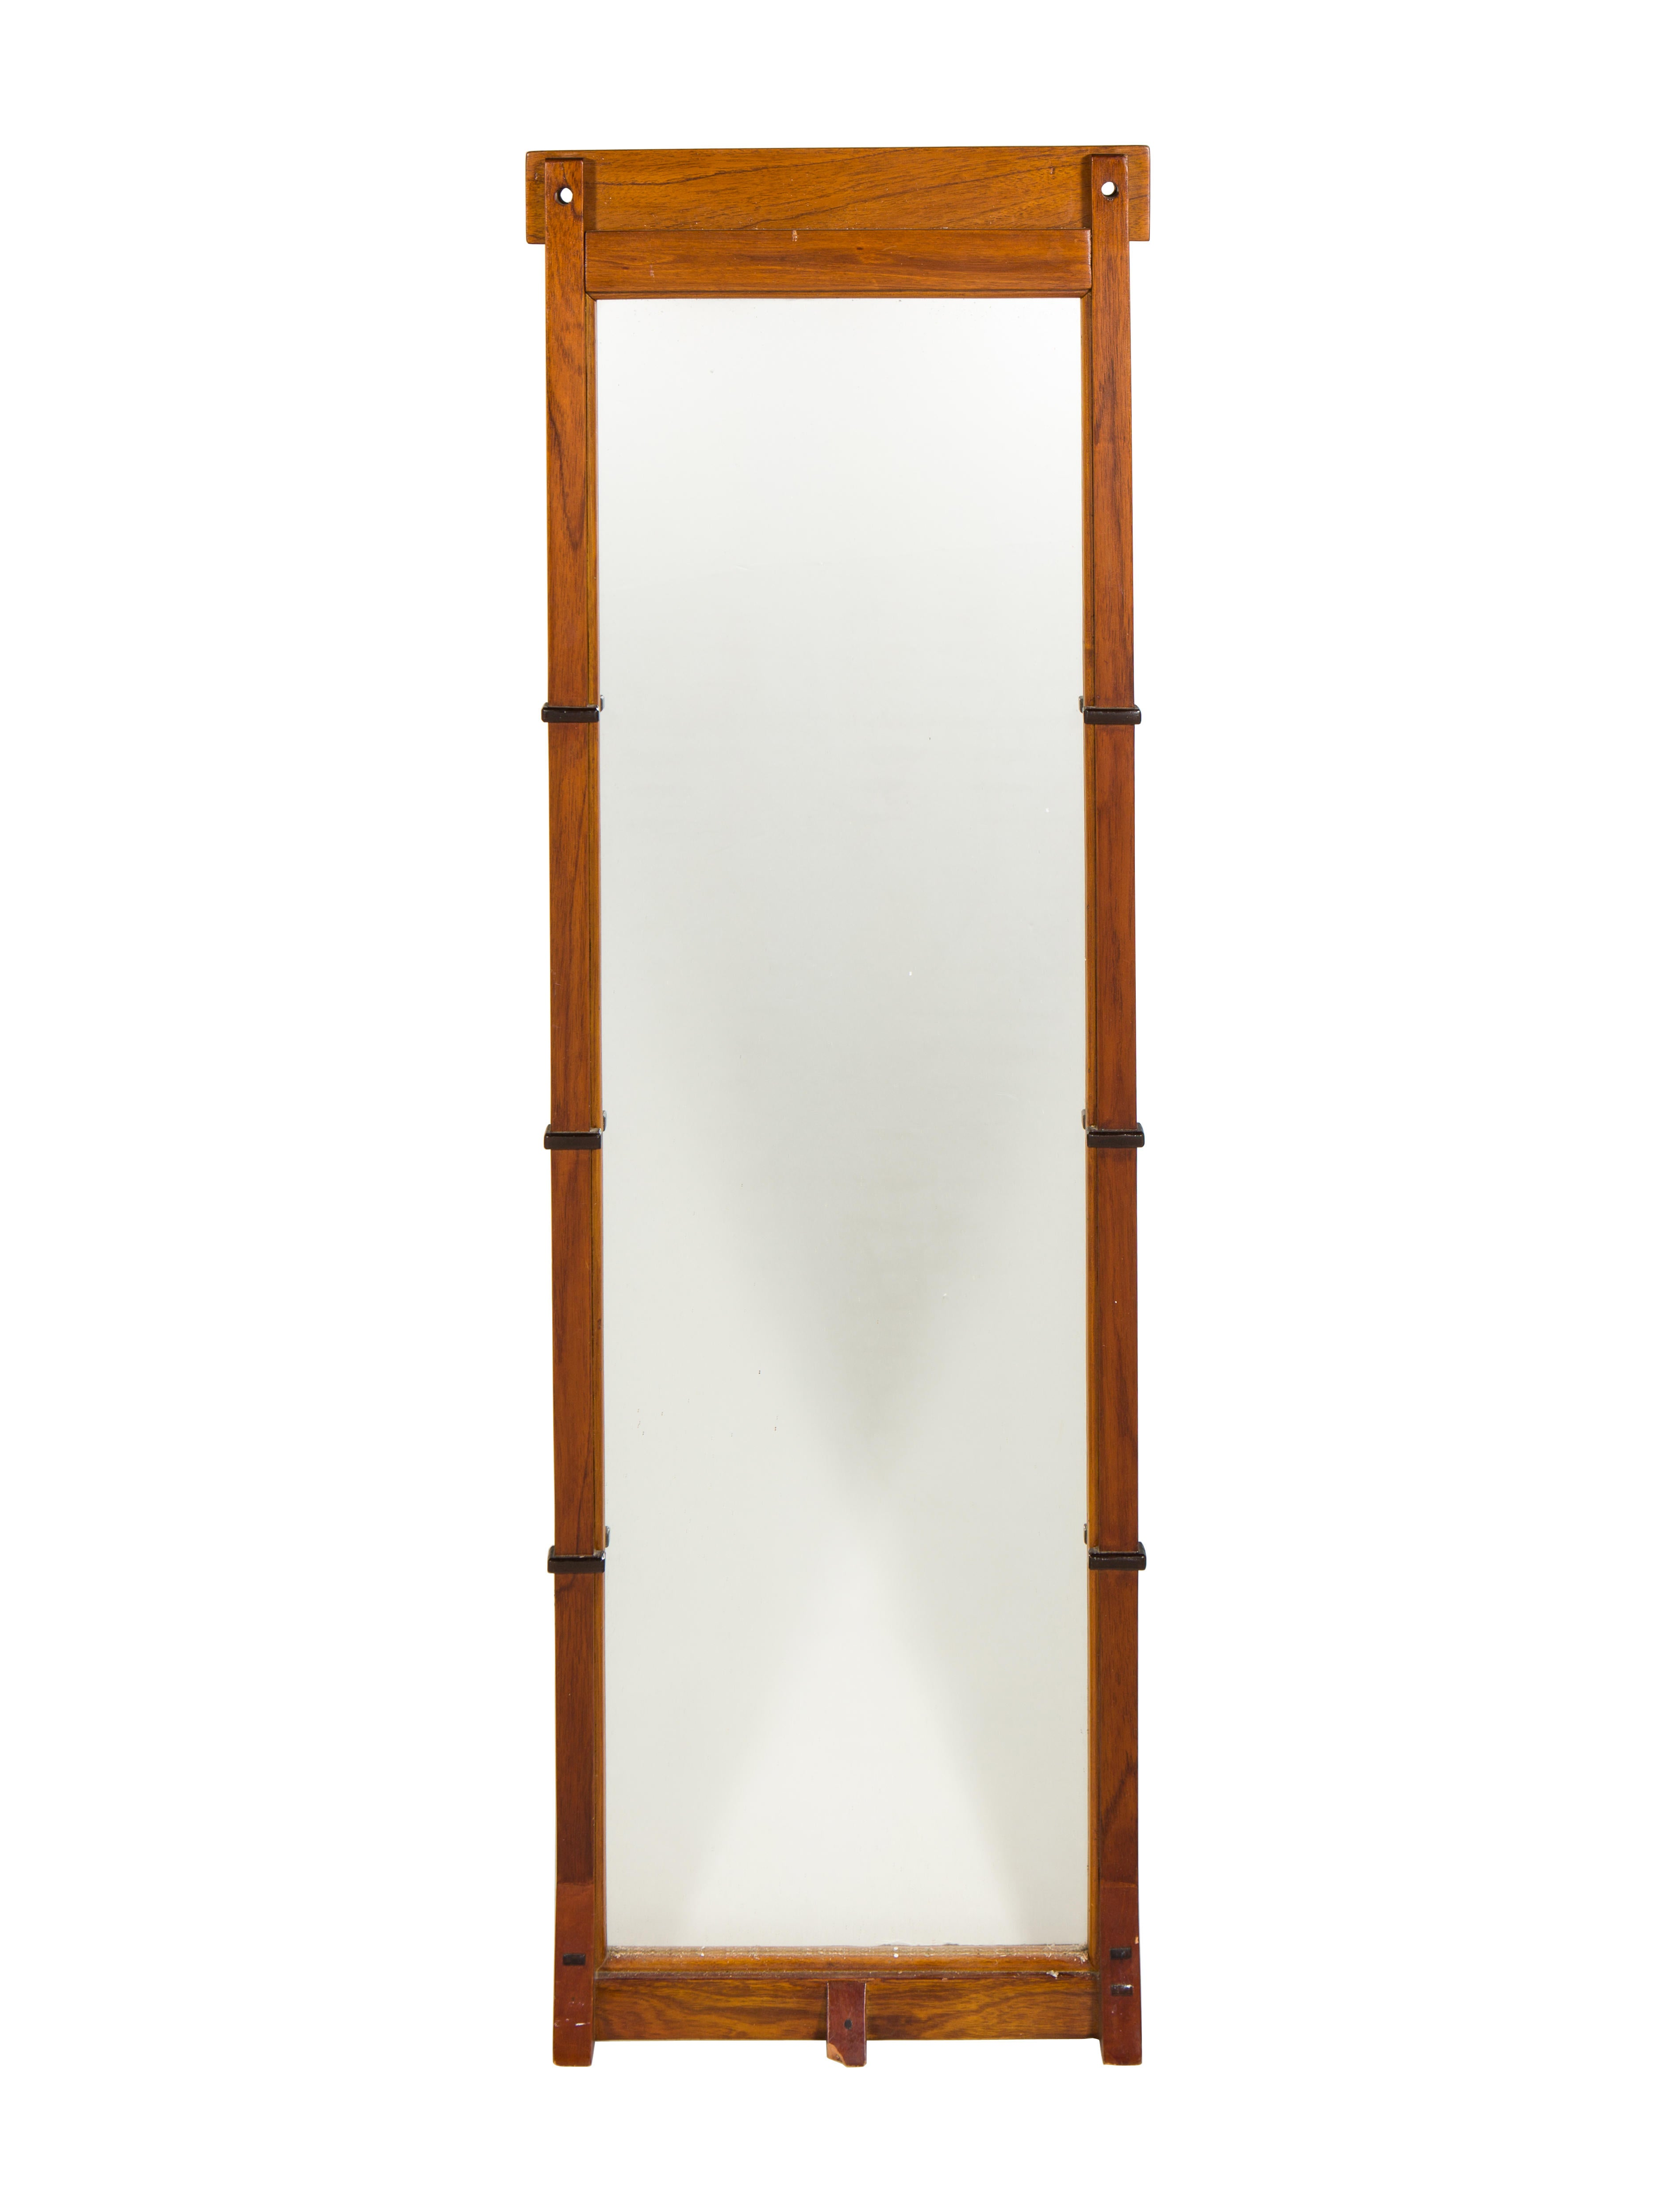 Floor length mirror decor and accessories mir20067 for Decorative floor length mirrors